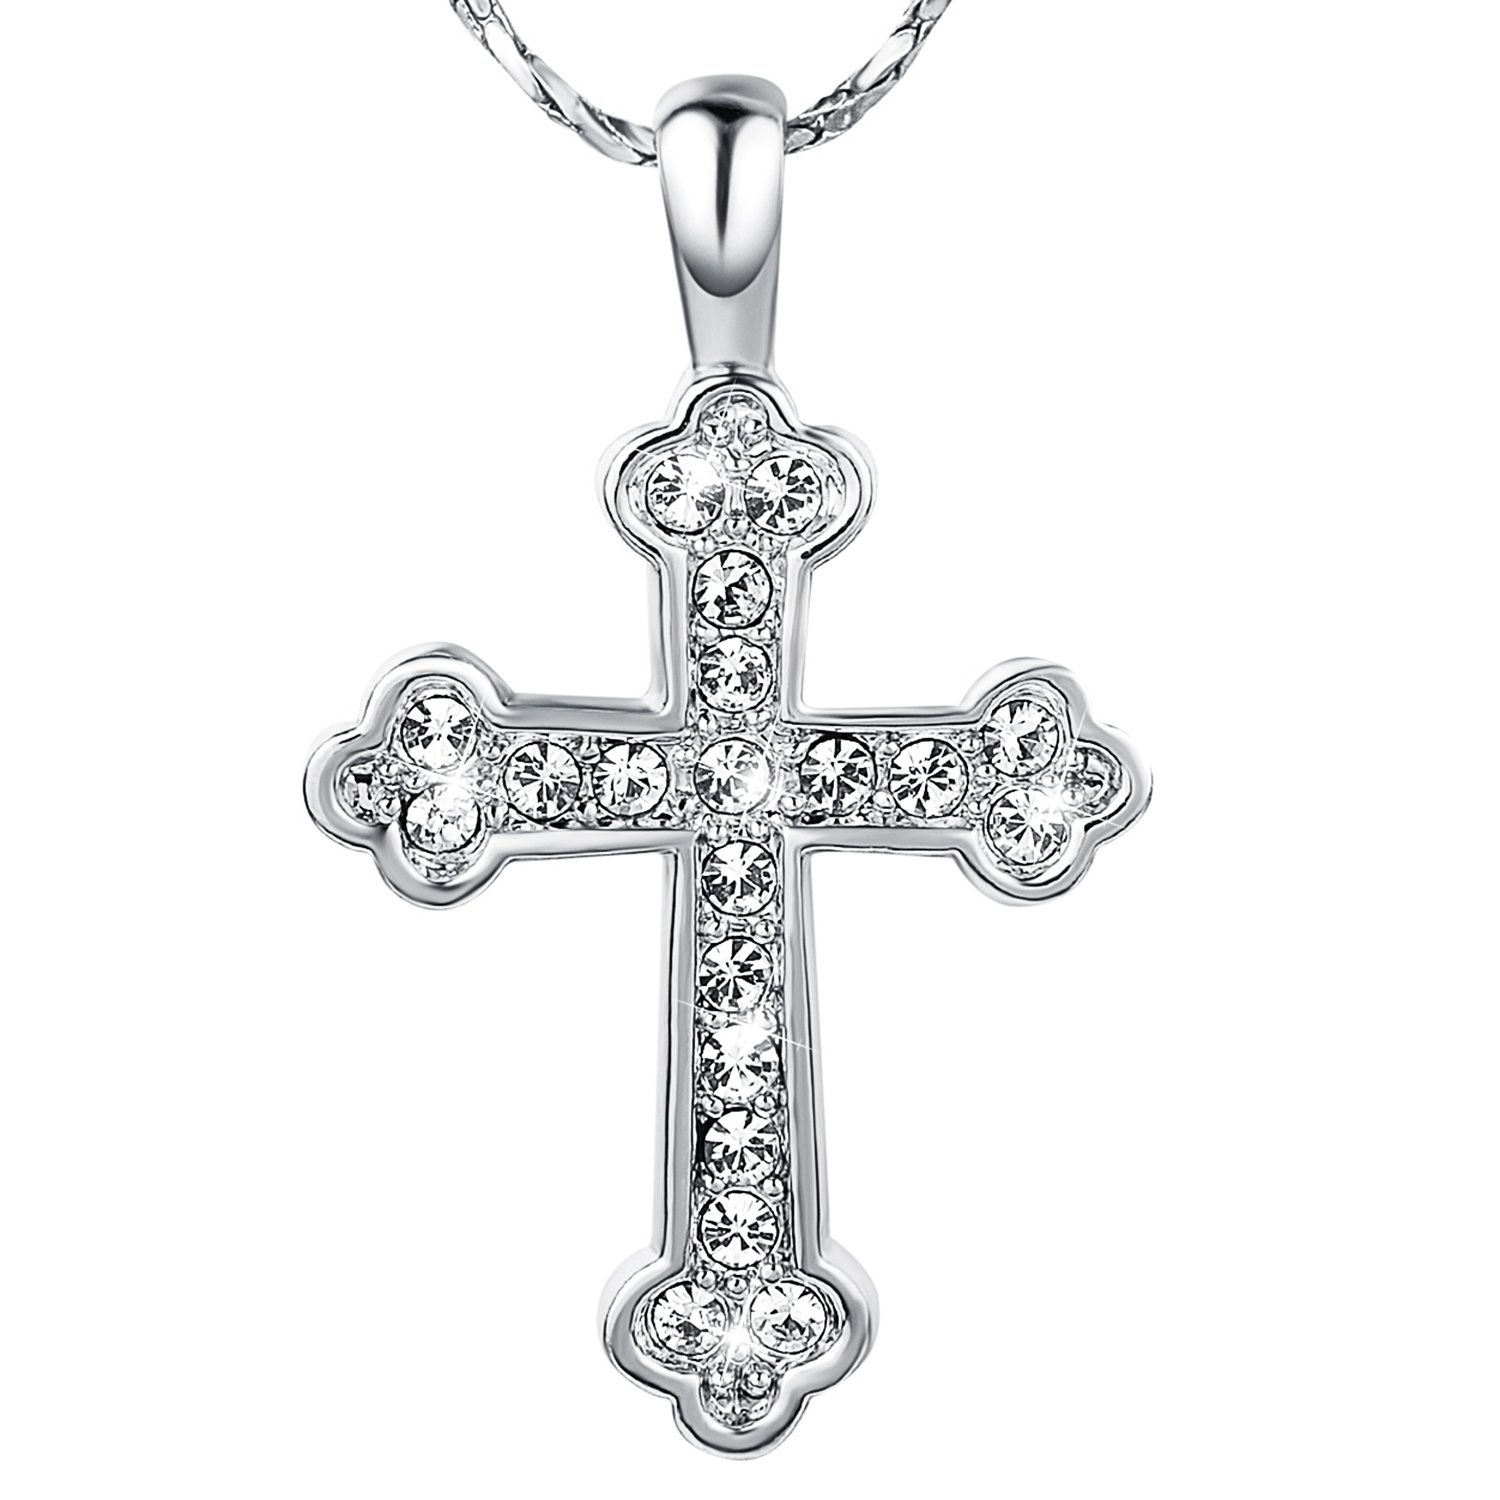 Yoursfs 18K White/Rose Gold Plated Cubic Zirconia Budded Cross Necklace with Pendant for Women Fashion Jewelry Gift Italina N126R1-CA